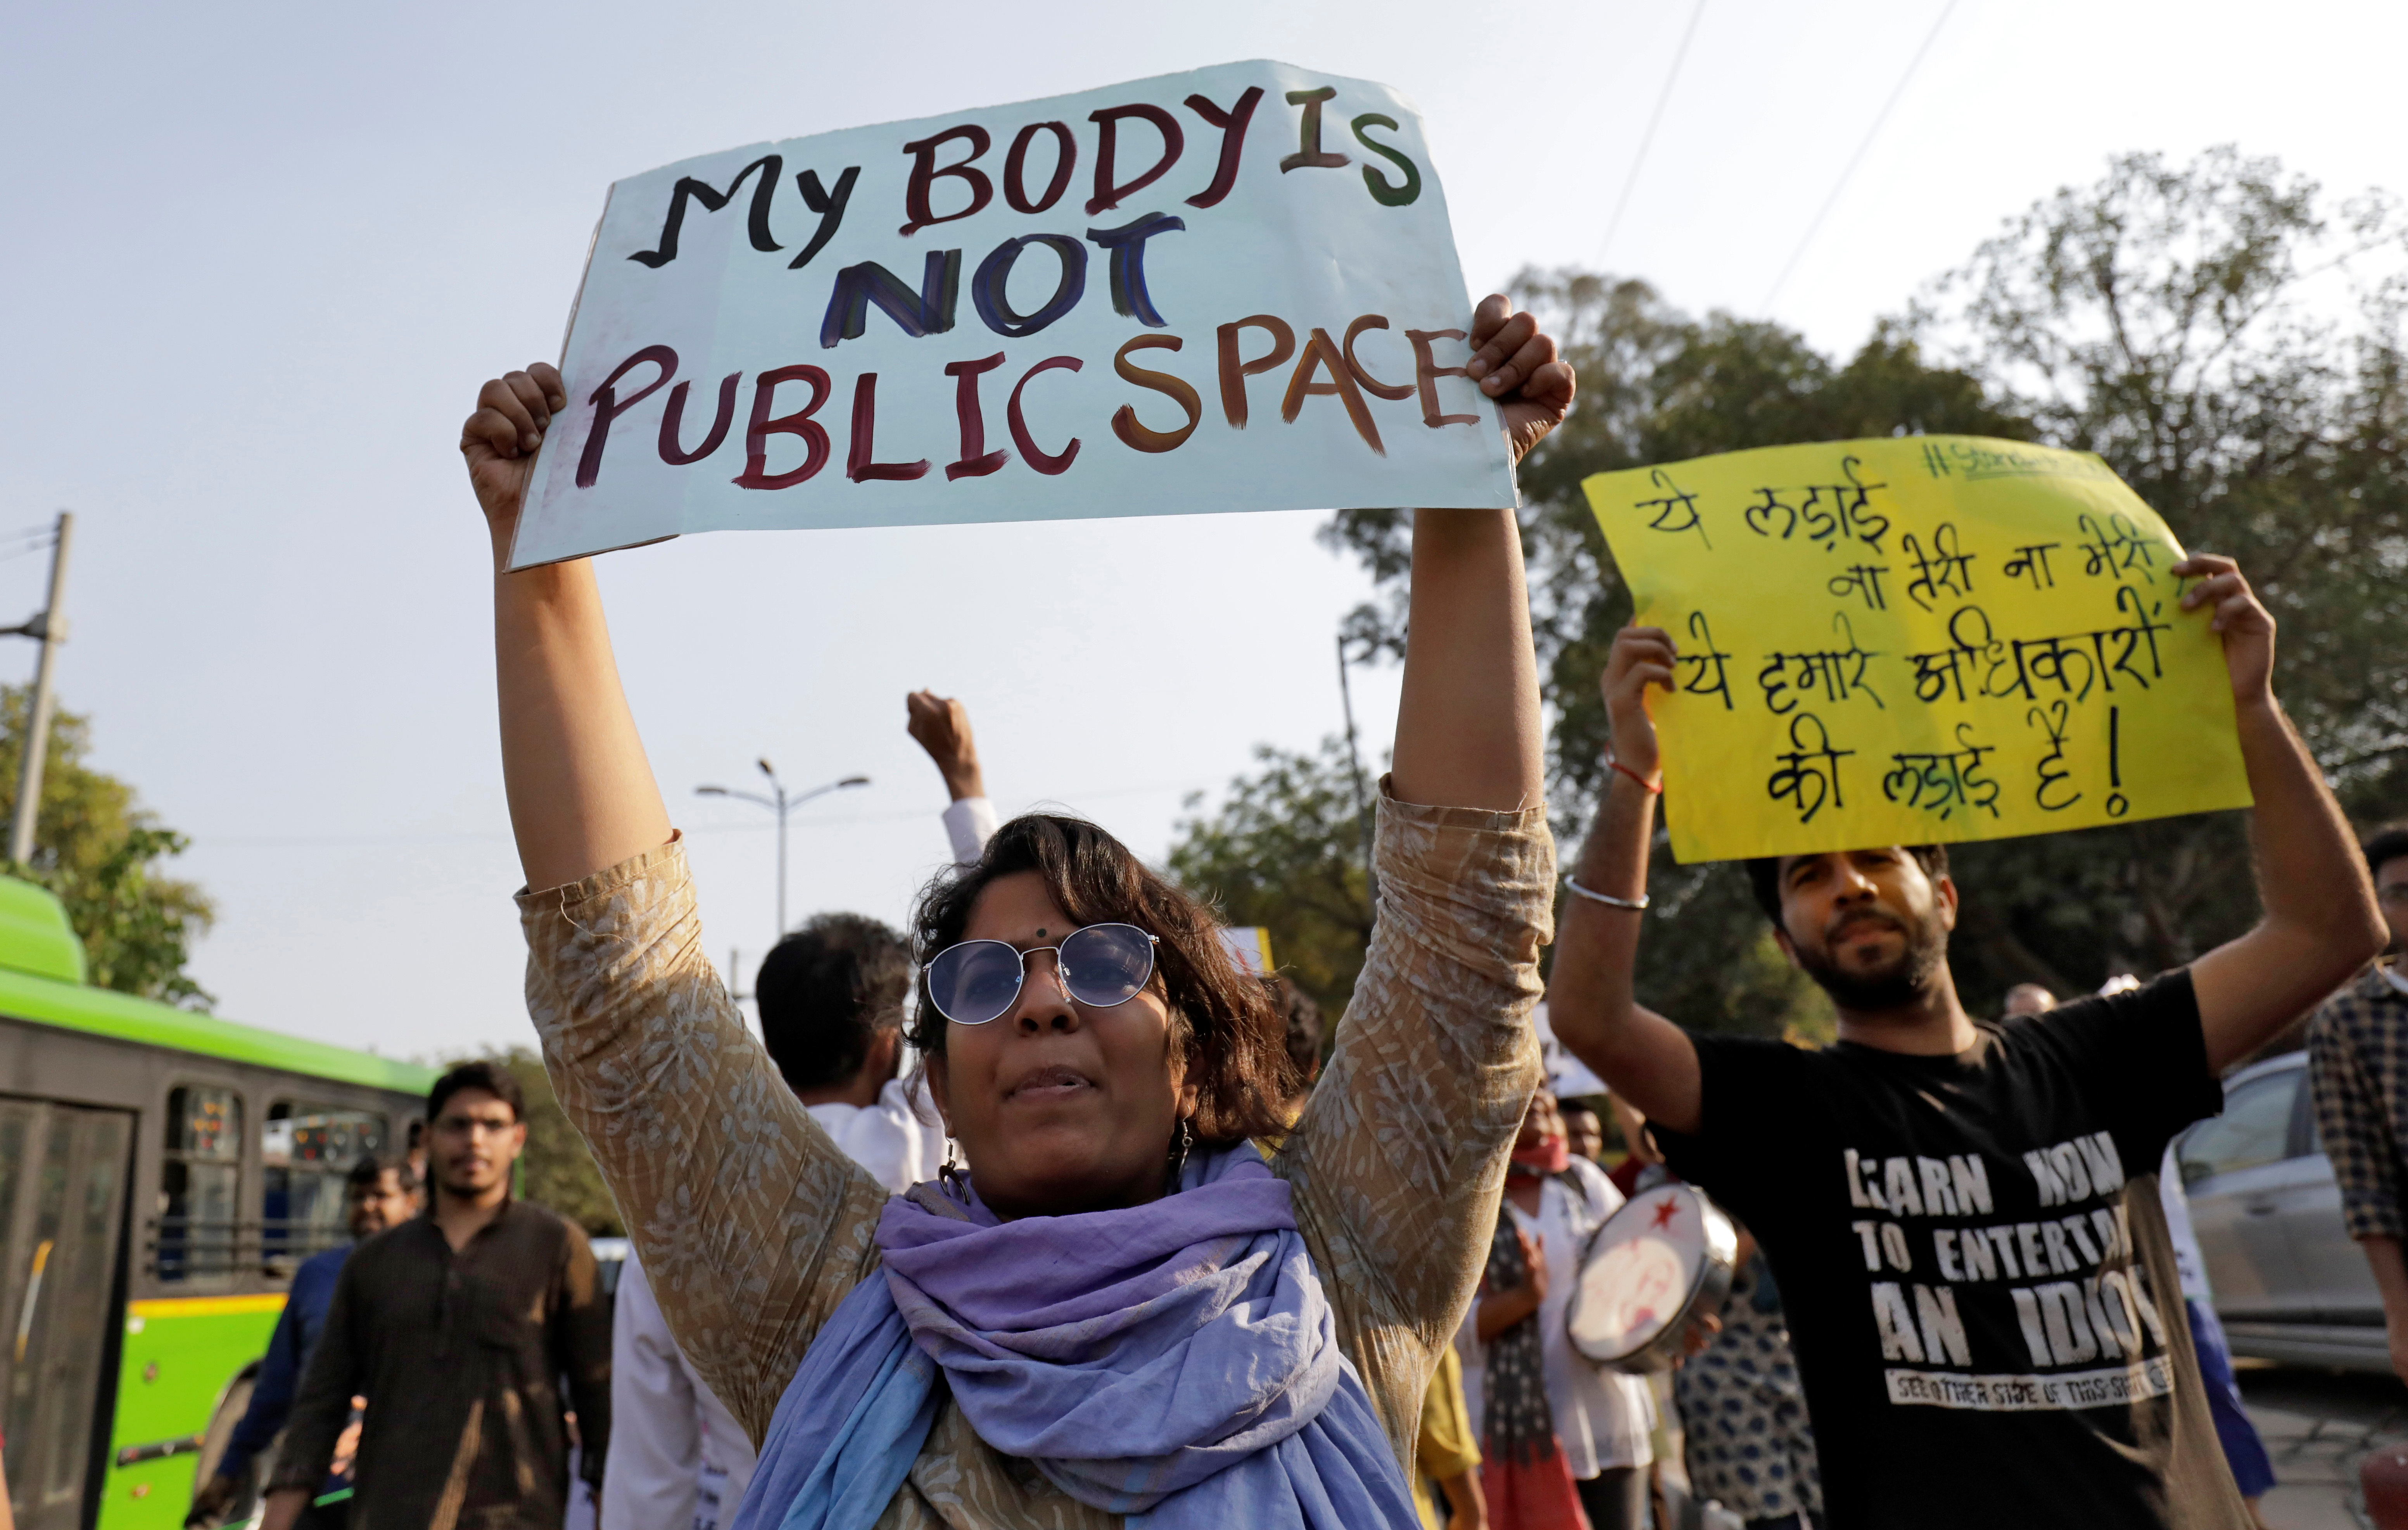 FILE -  Students and teachers of Jawaharlal Nehru University participate in a protest demanding suspension of a professor accused of sexual harassment, in New Delhi, March 23, 2018.